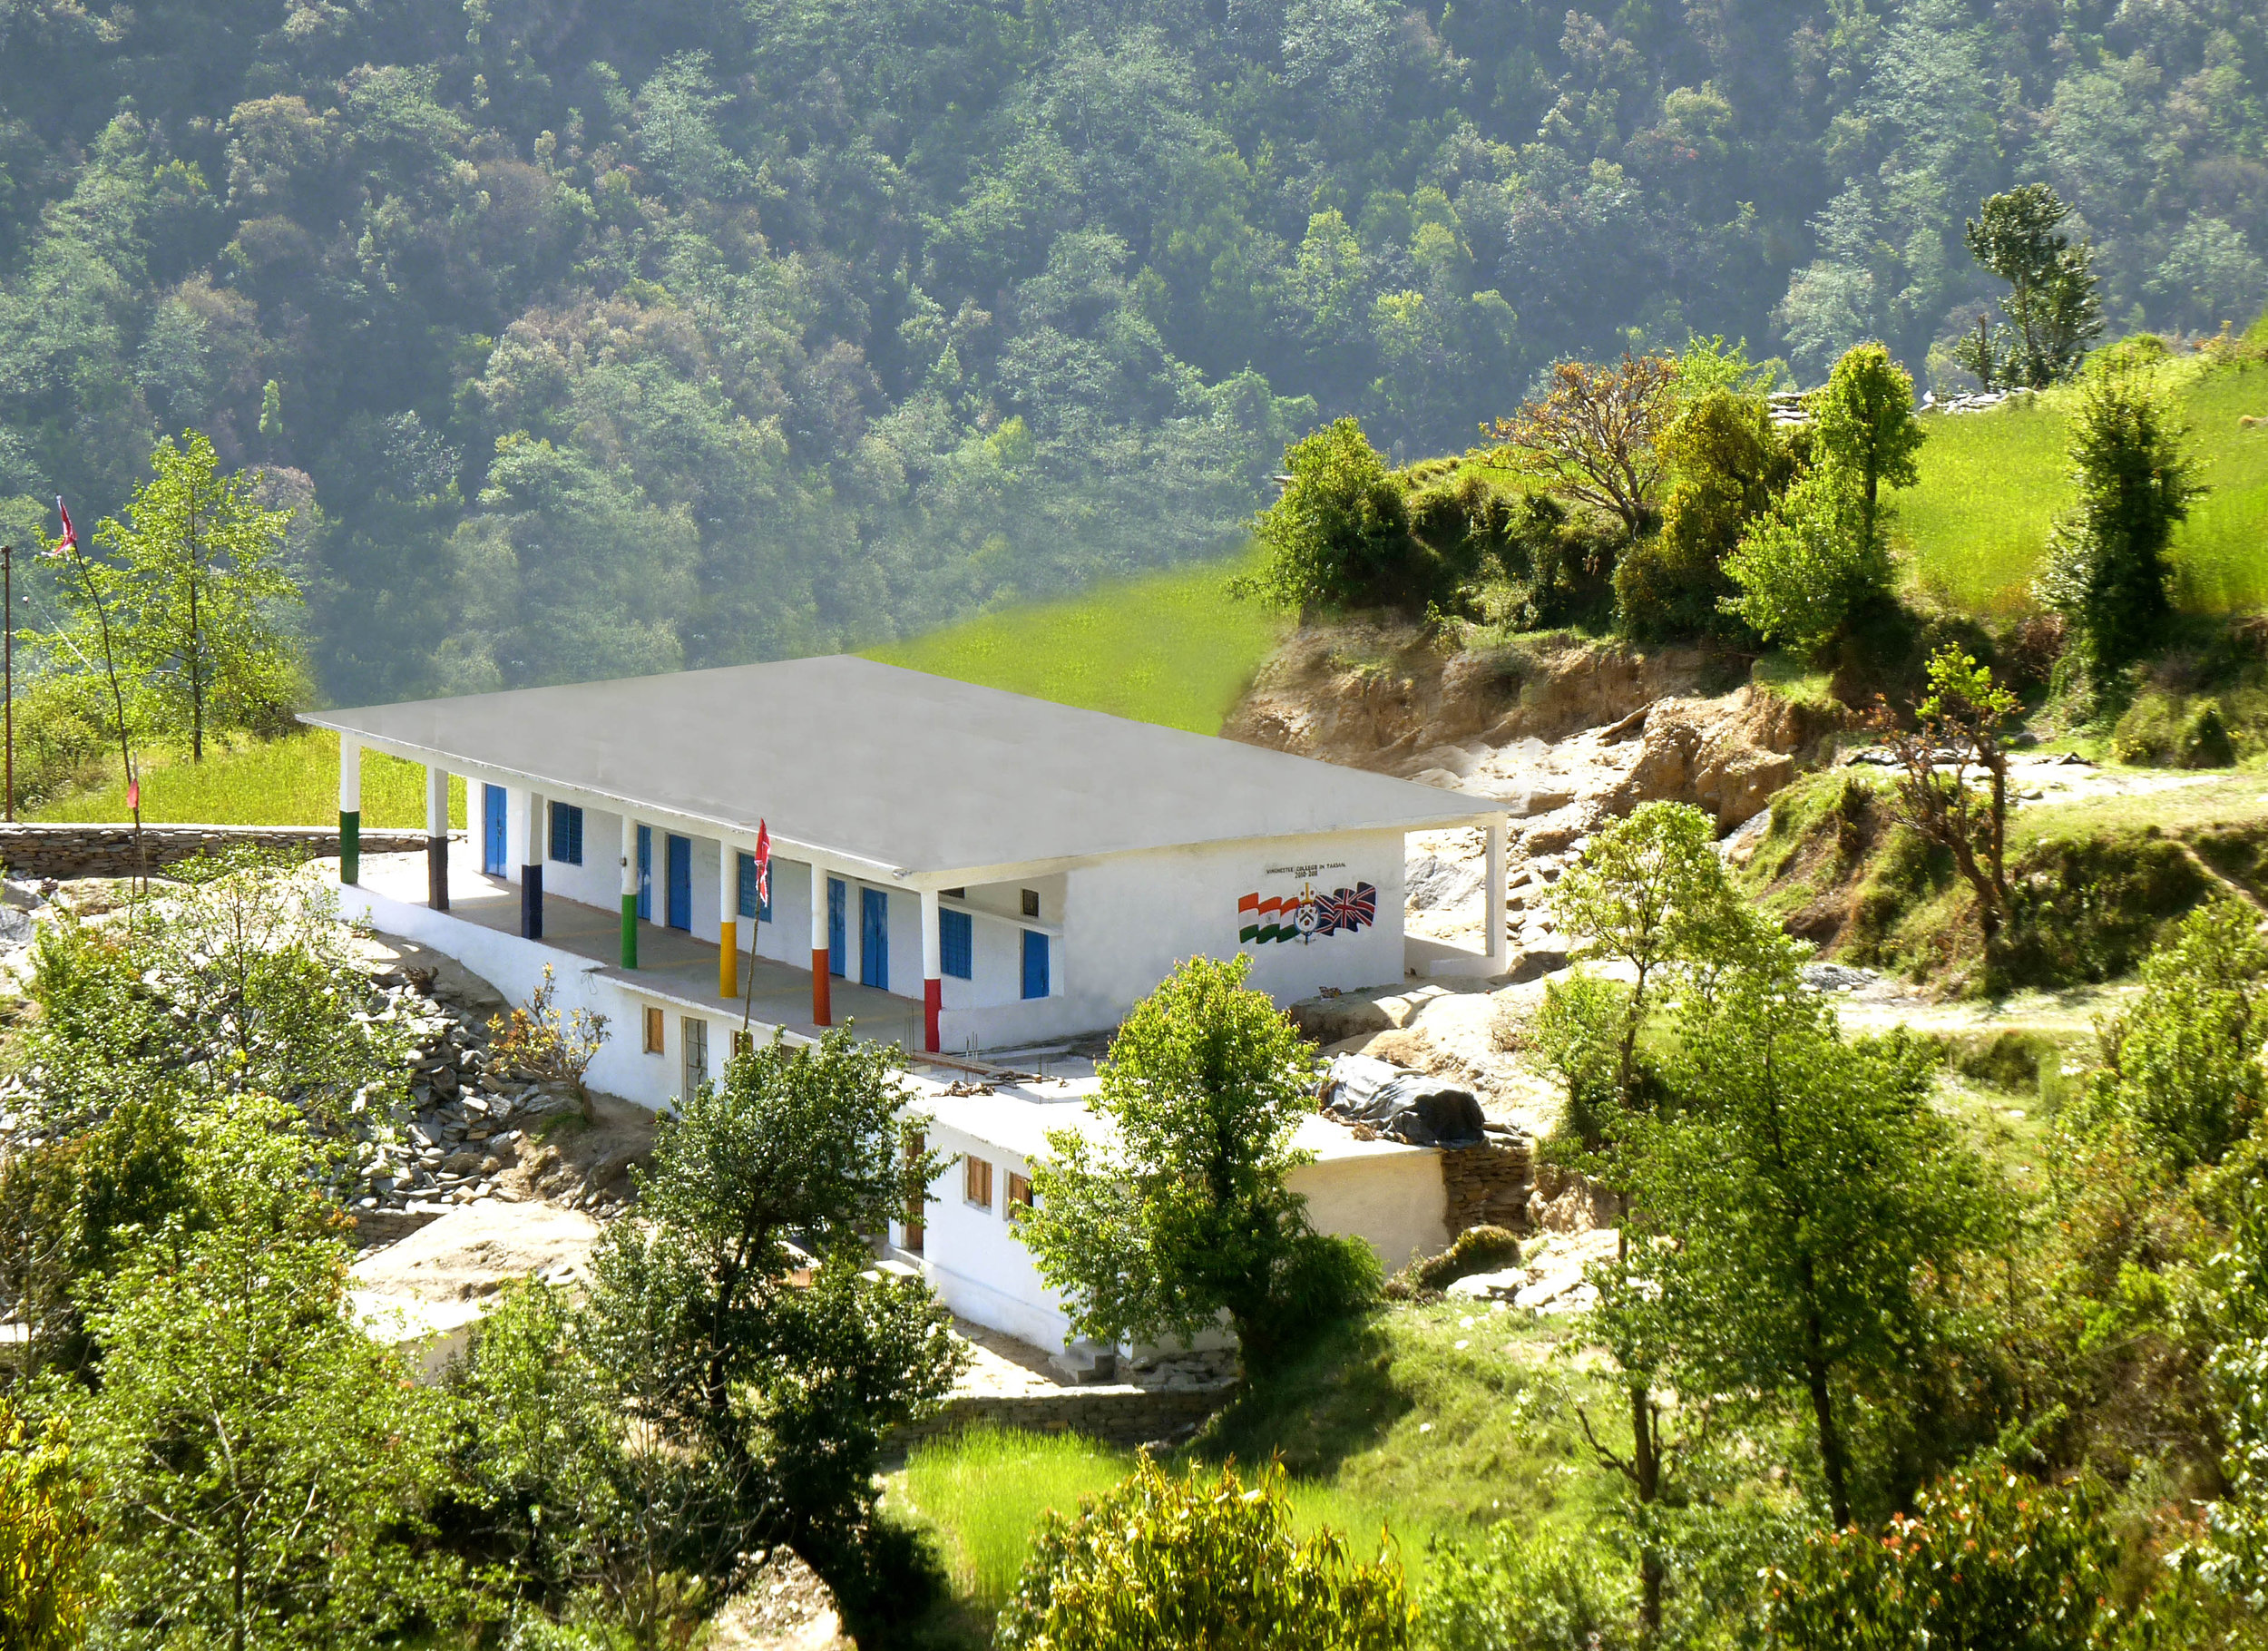 Tarsaal Primary School, Uttrakhand - Funded by Winchester College, UK